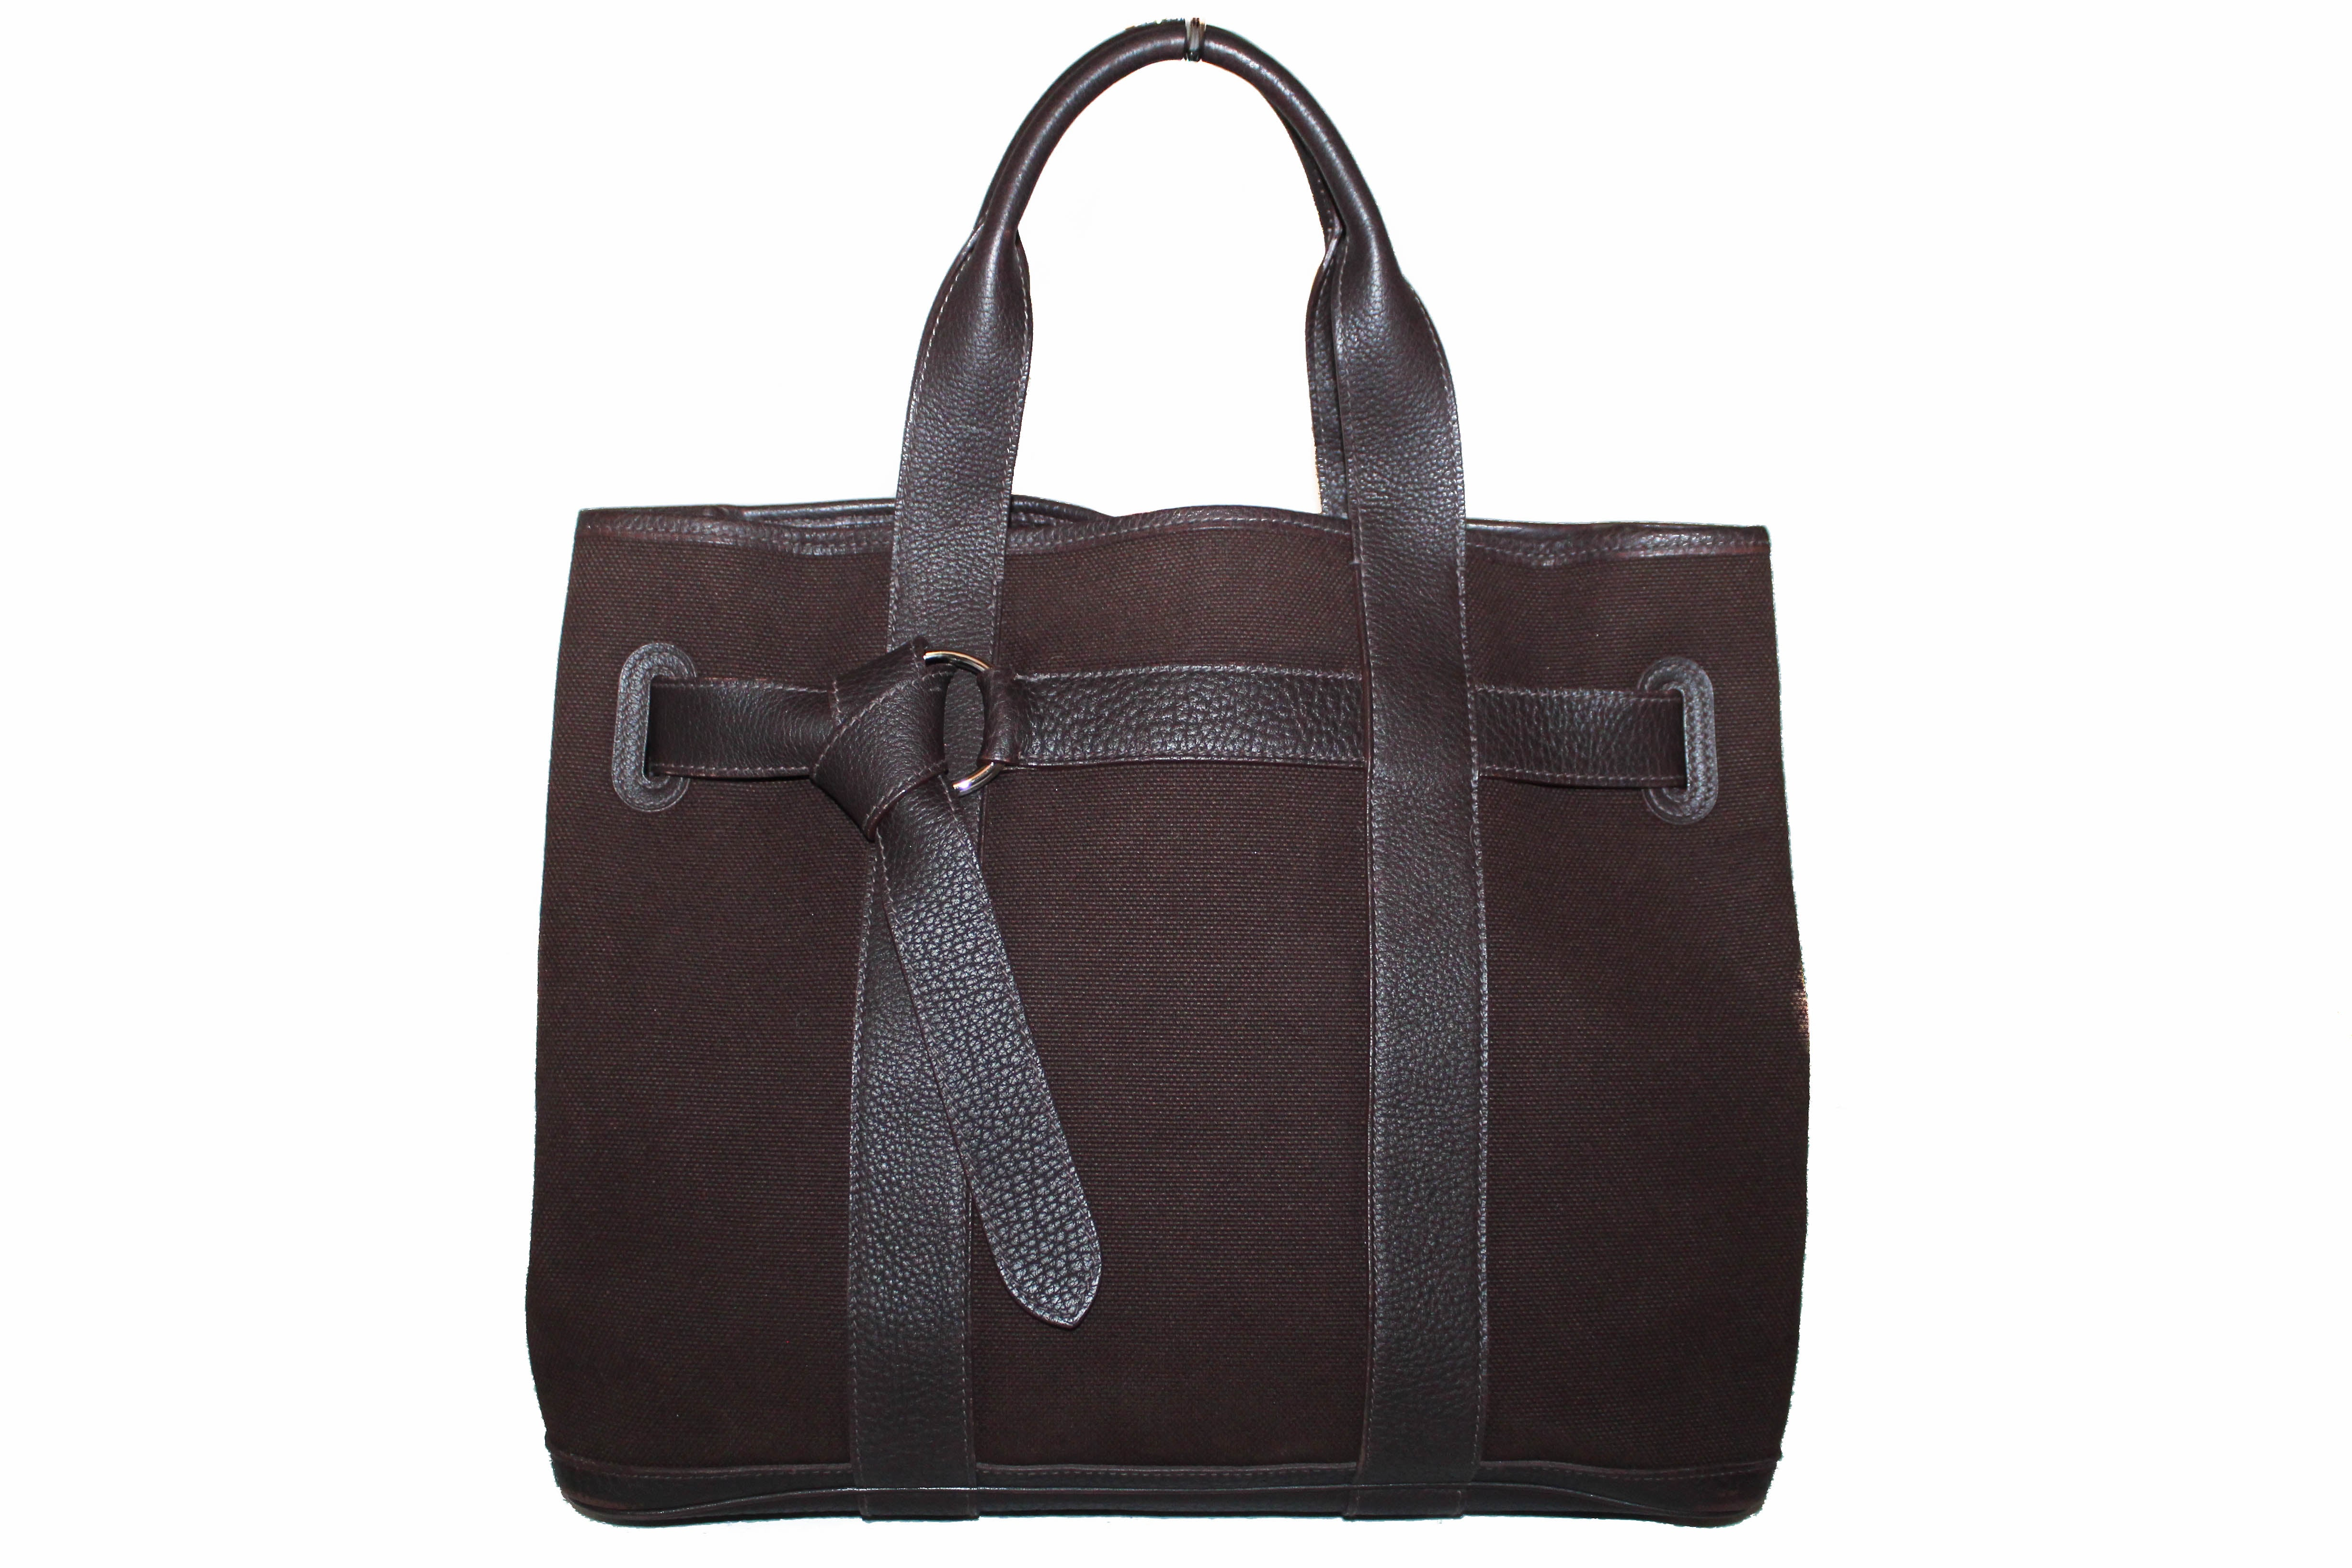 Authentic Hermes Dark Brown Canvas Ceinture MM Tote Handbag